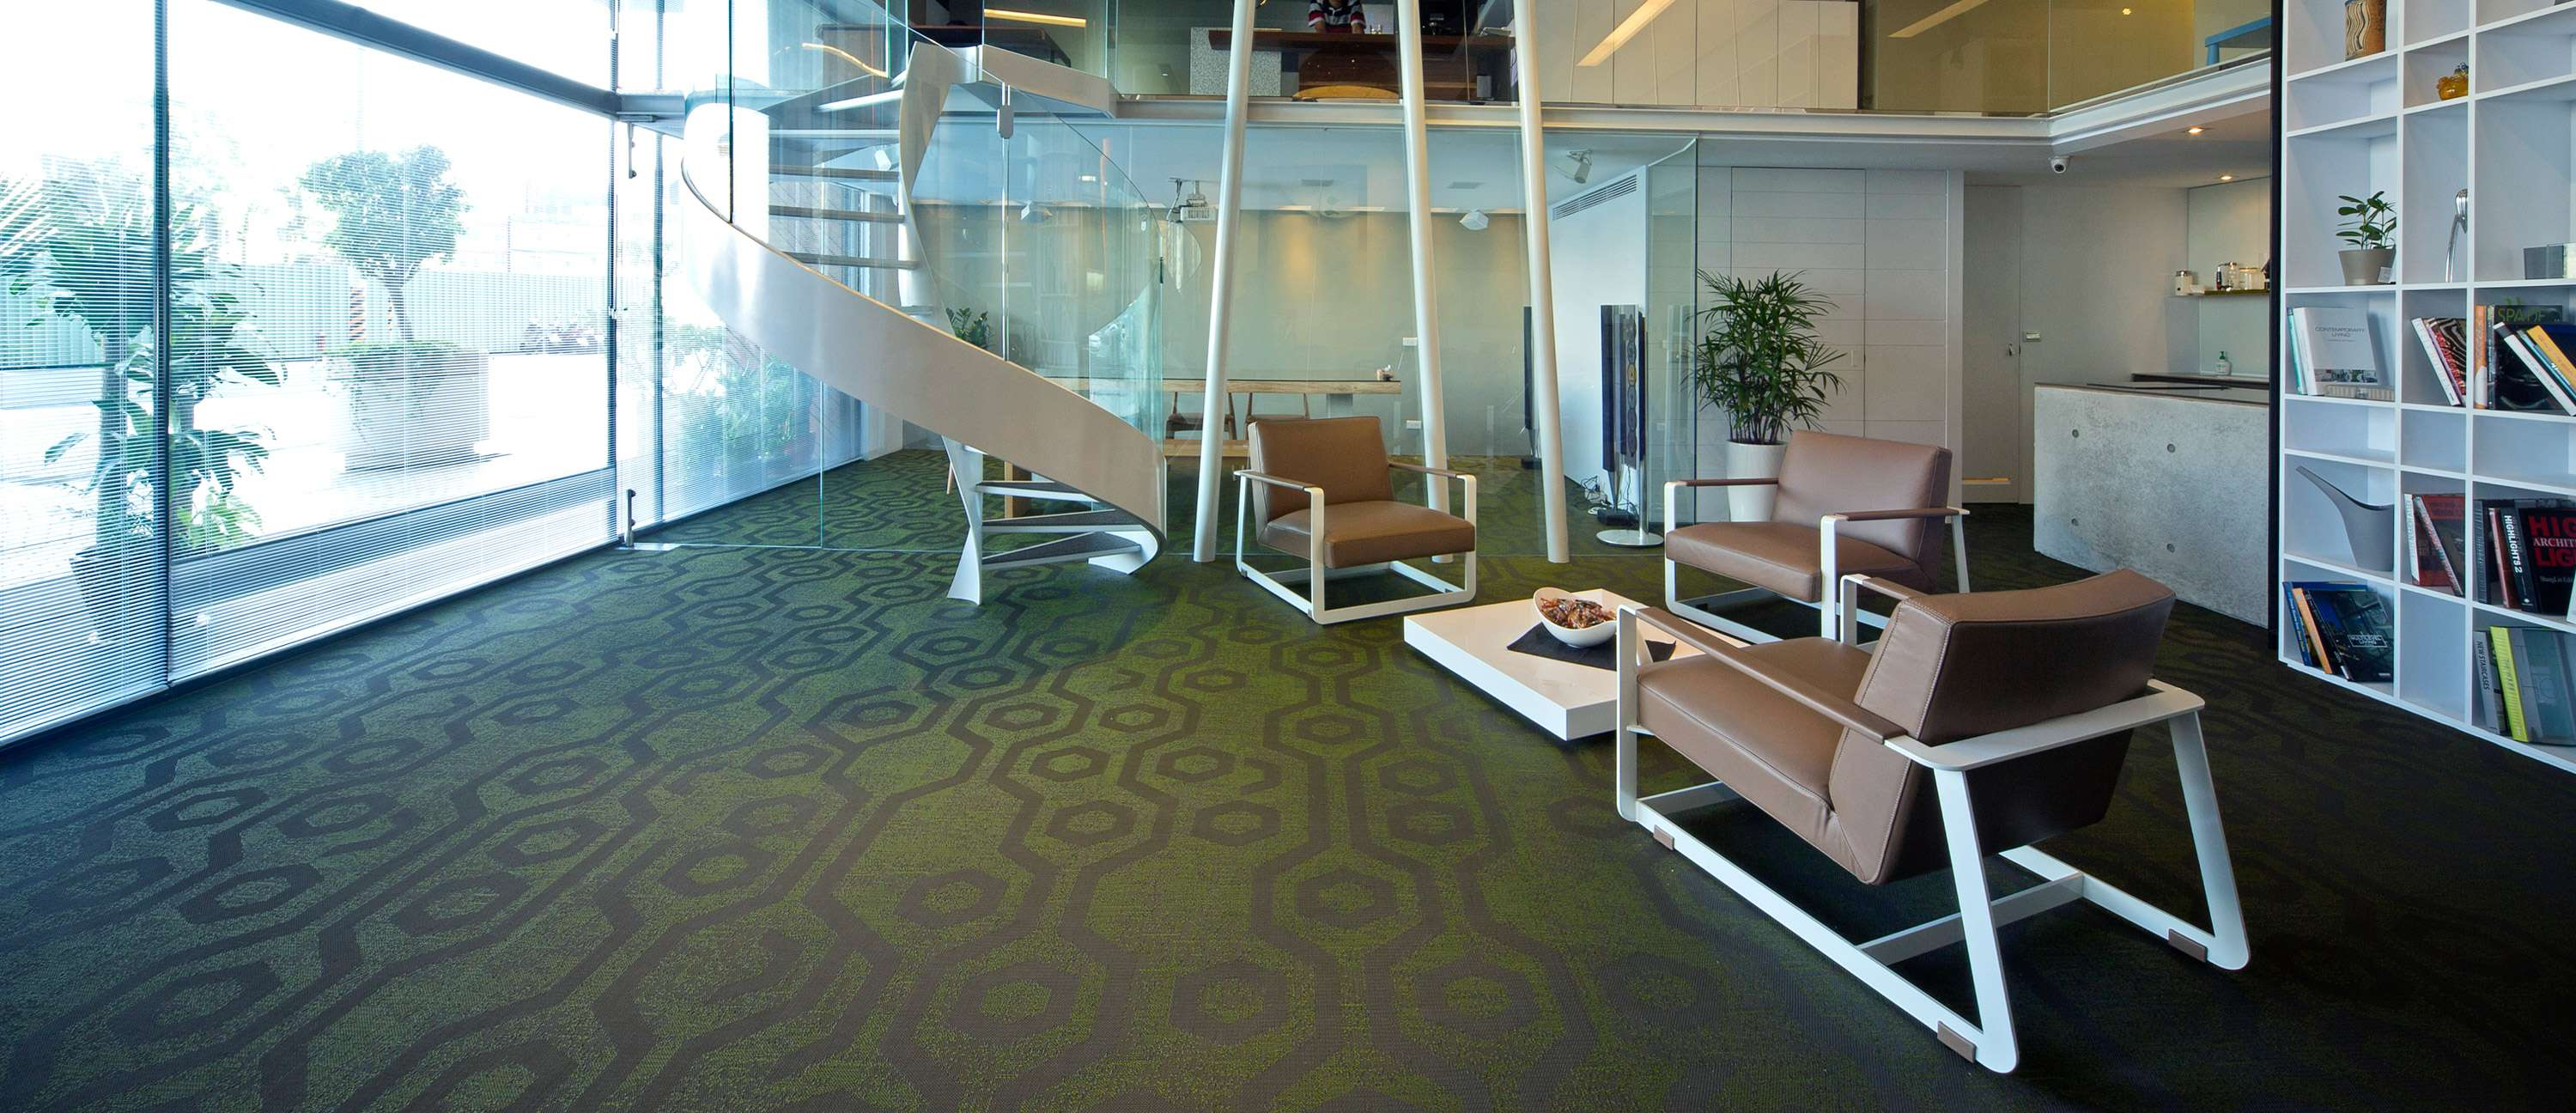 Bolon flooring in the office of Chuan Yu Interior Design in Zhongli, Taiwan